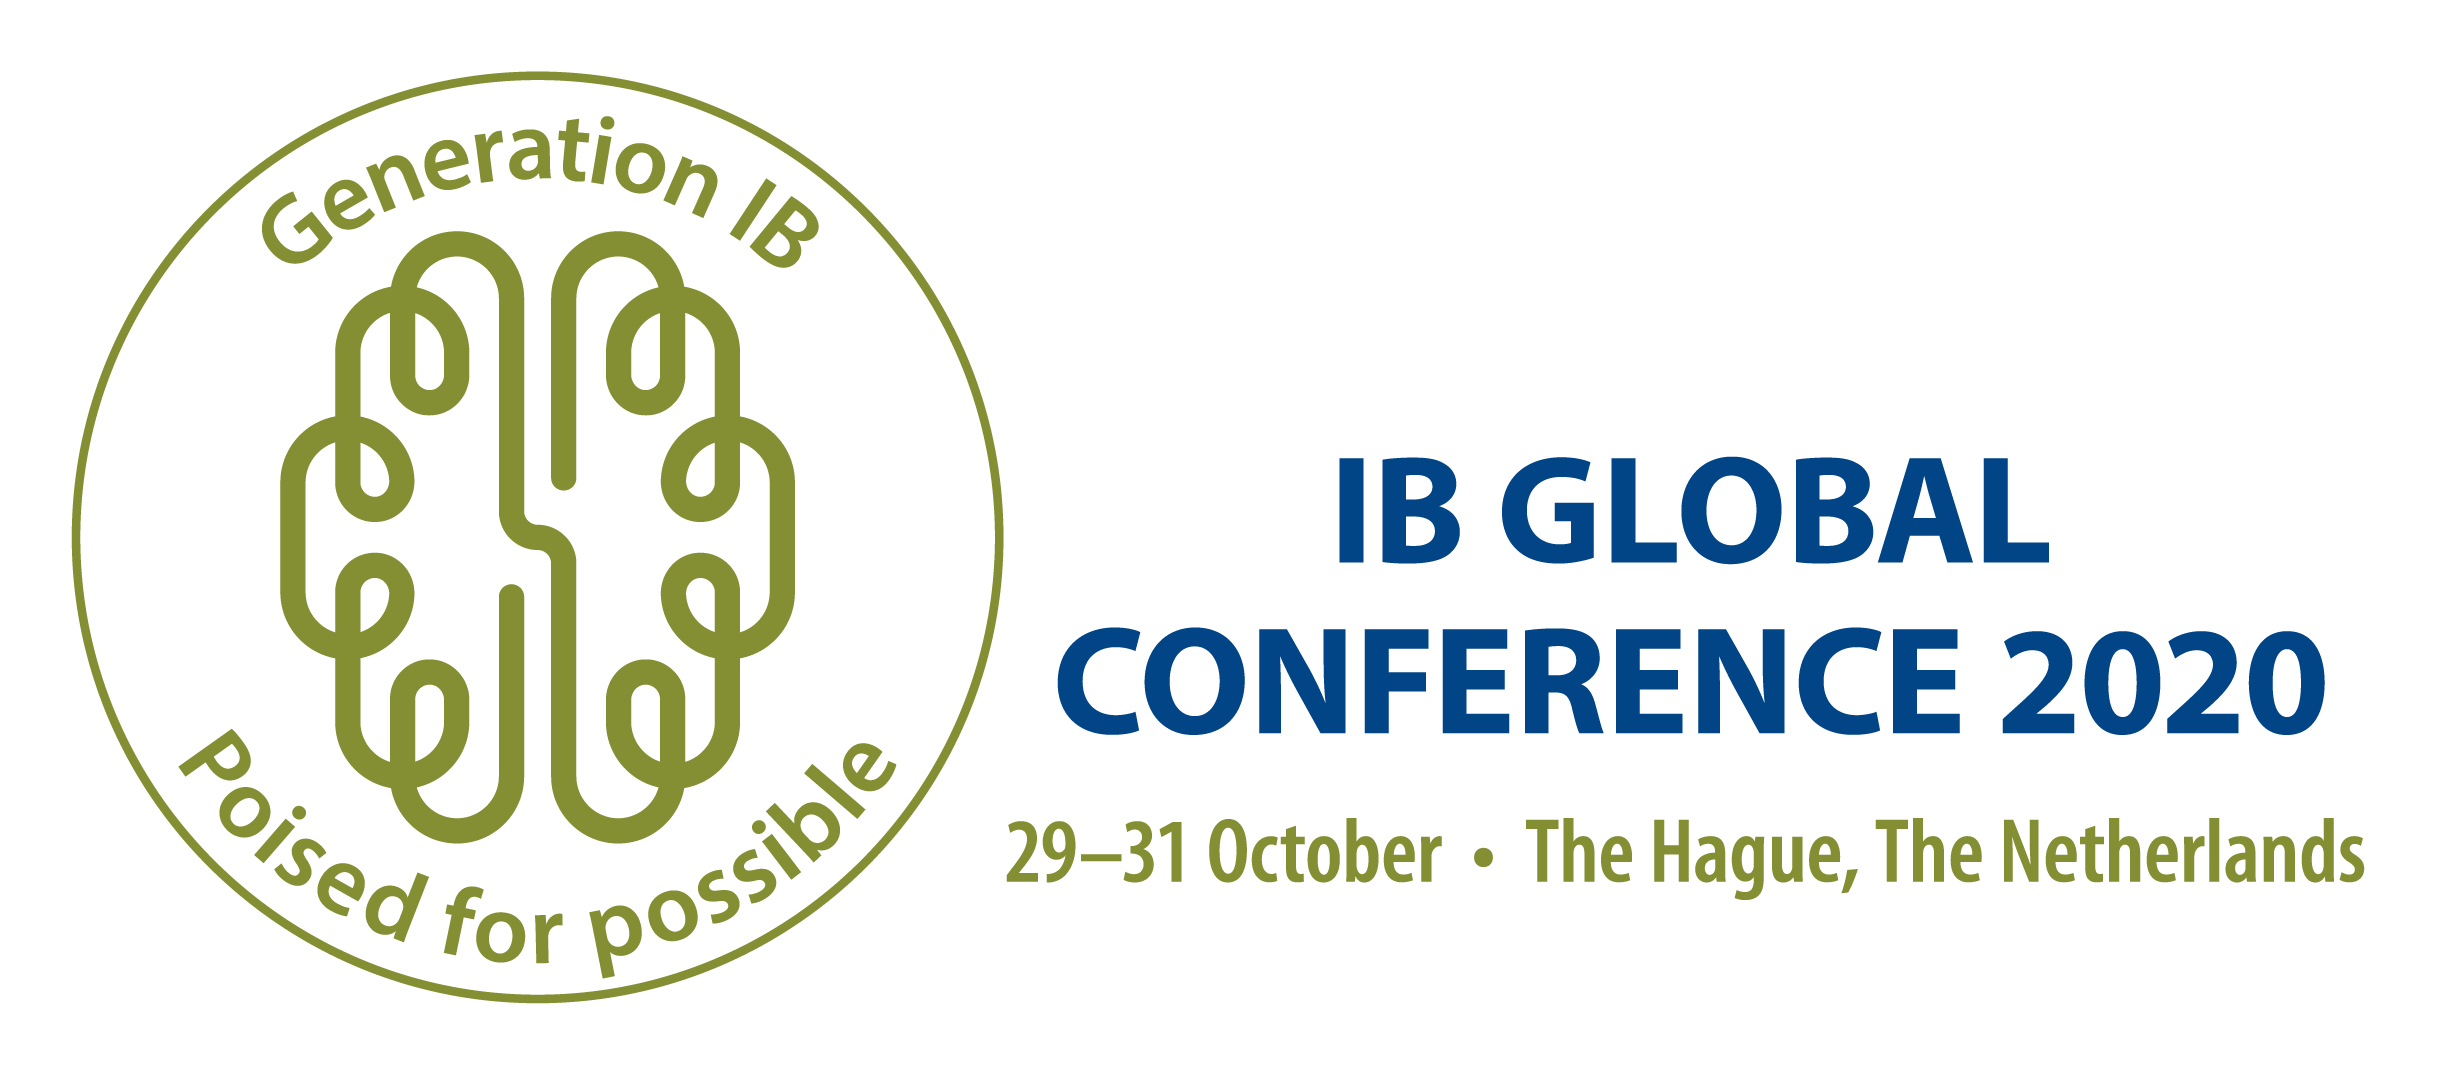 CANCELLED IB Global Conference, The Hague, Netherlands, 2020